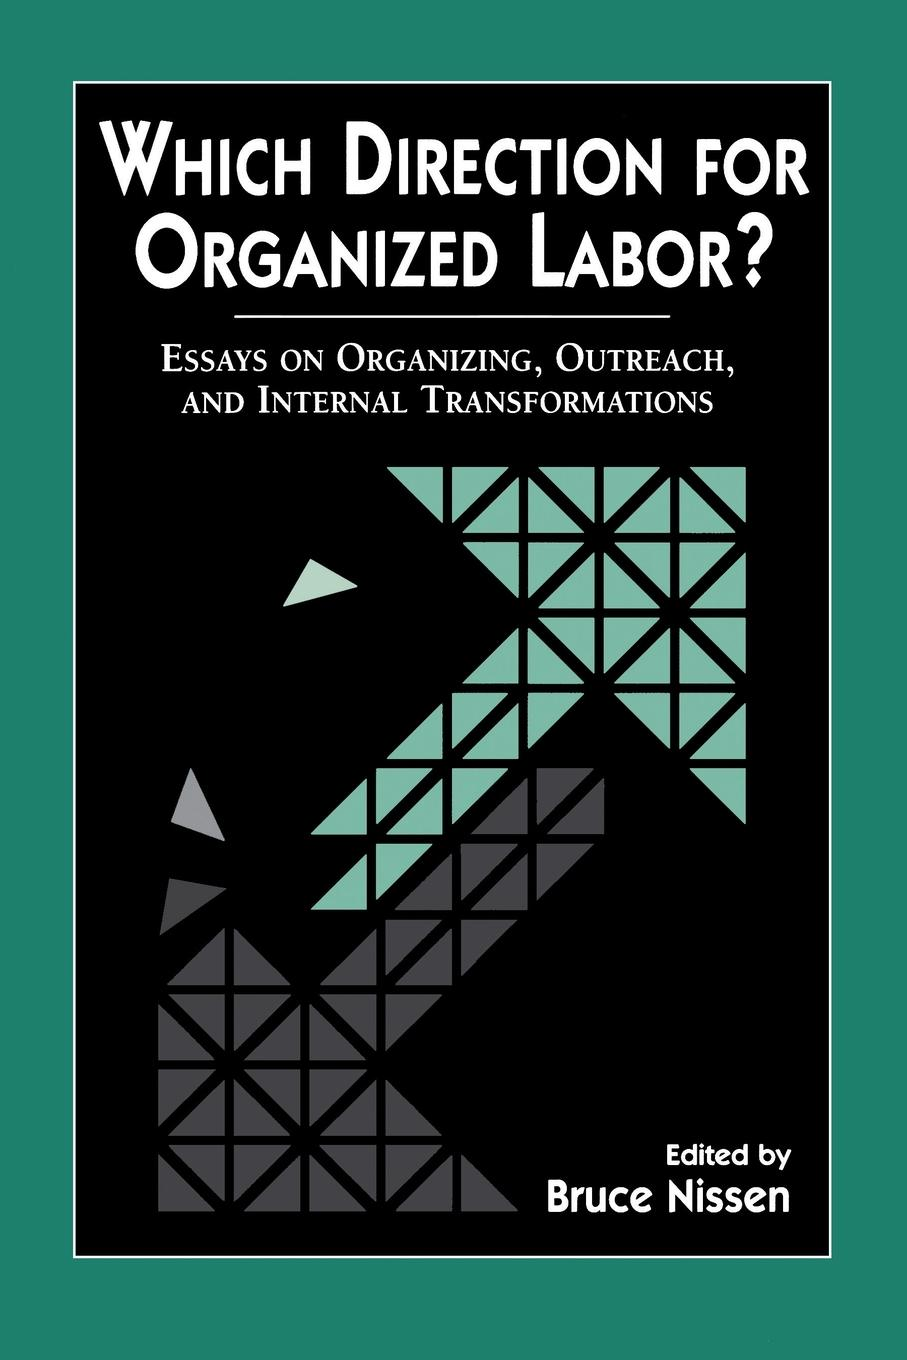 Which Direction for Organized Labor.. Essay on Organizing, Outreach, and Internal Transformations saleh alkafri child labor and schooling